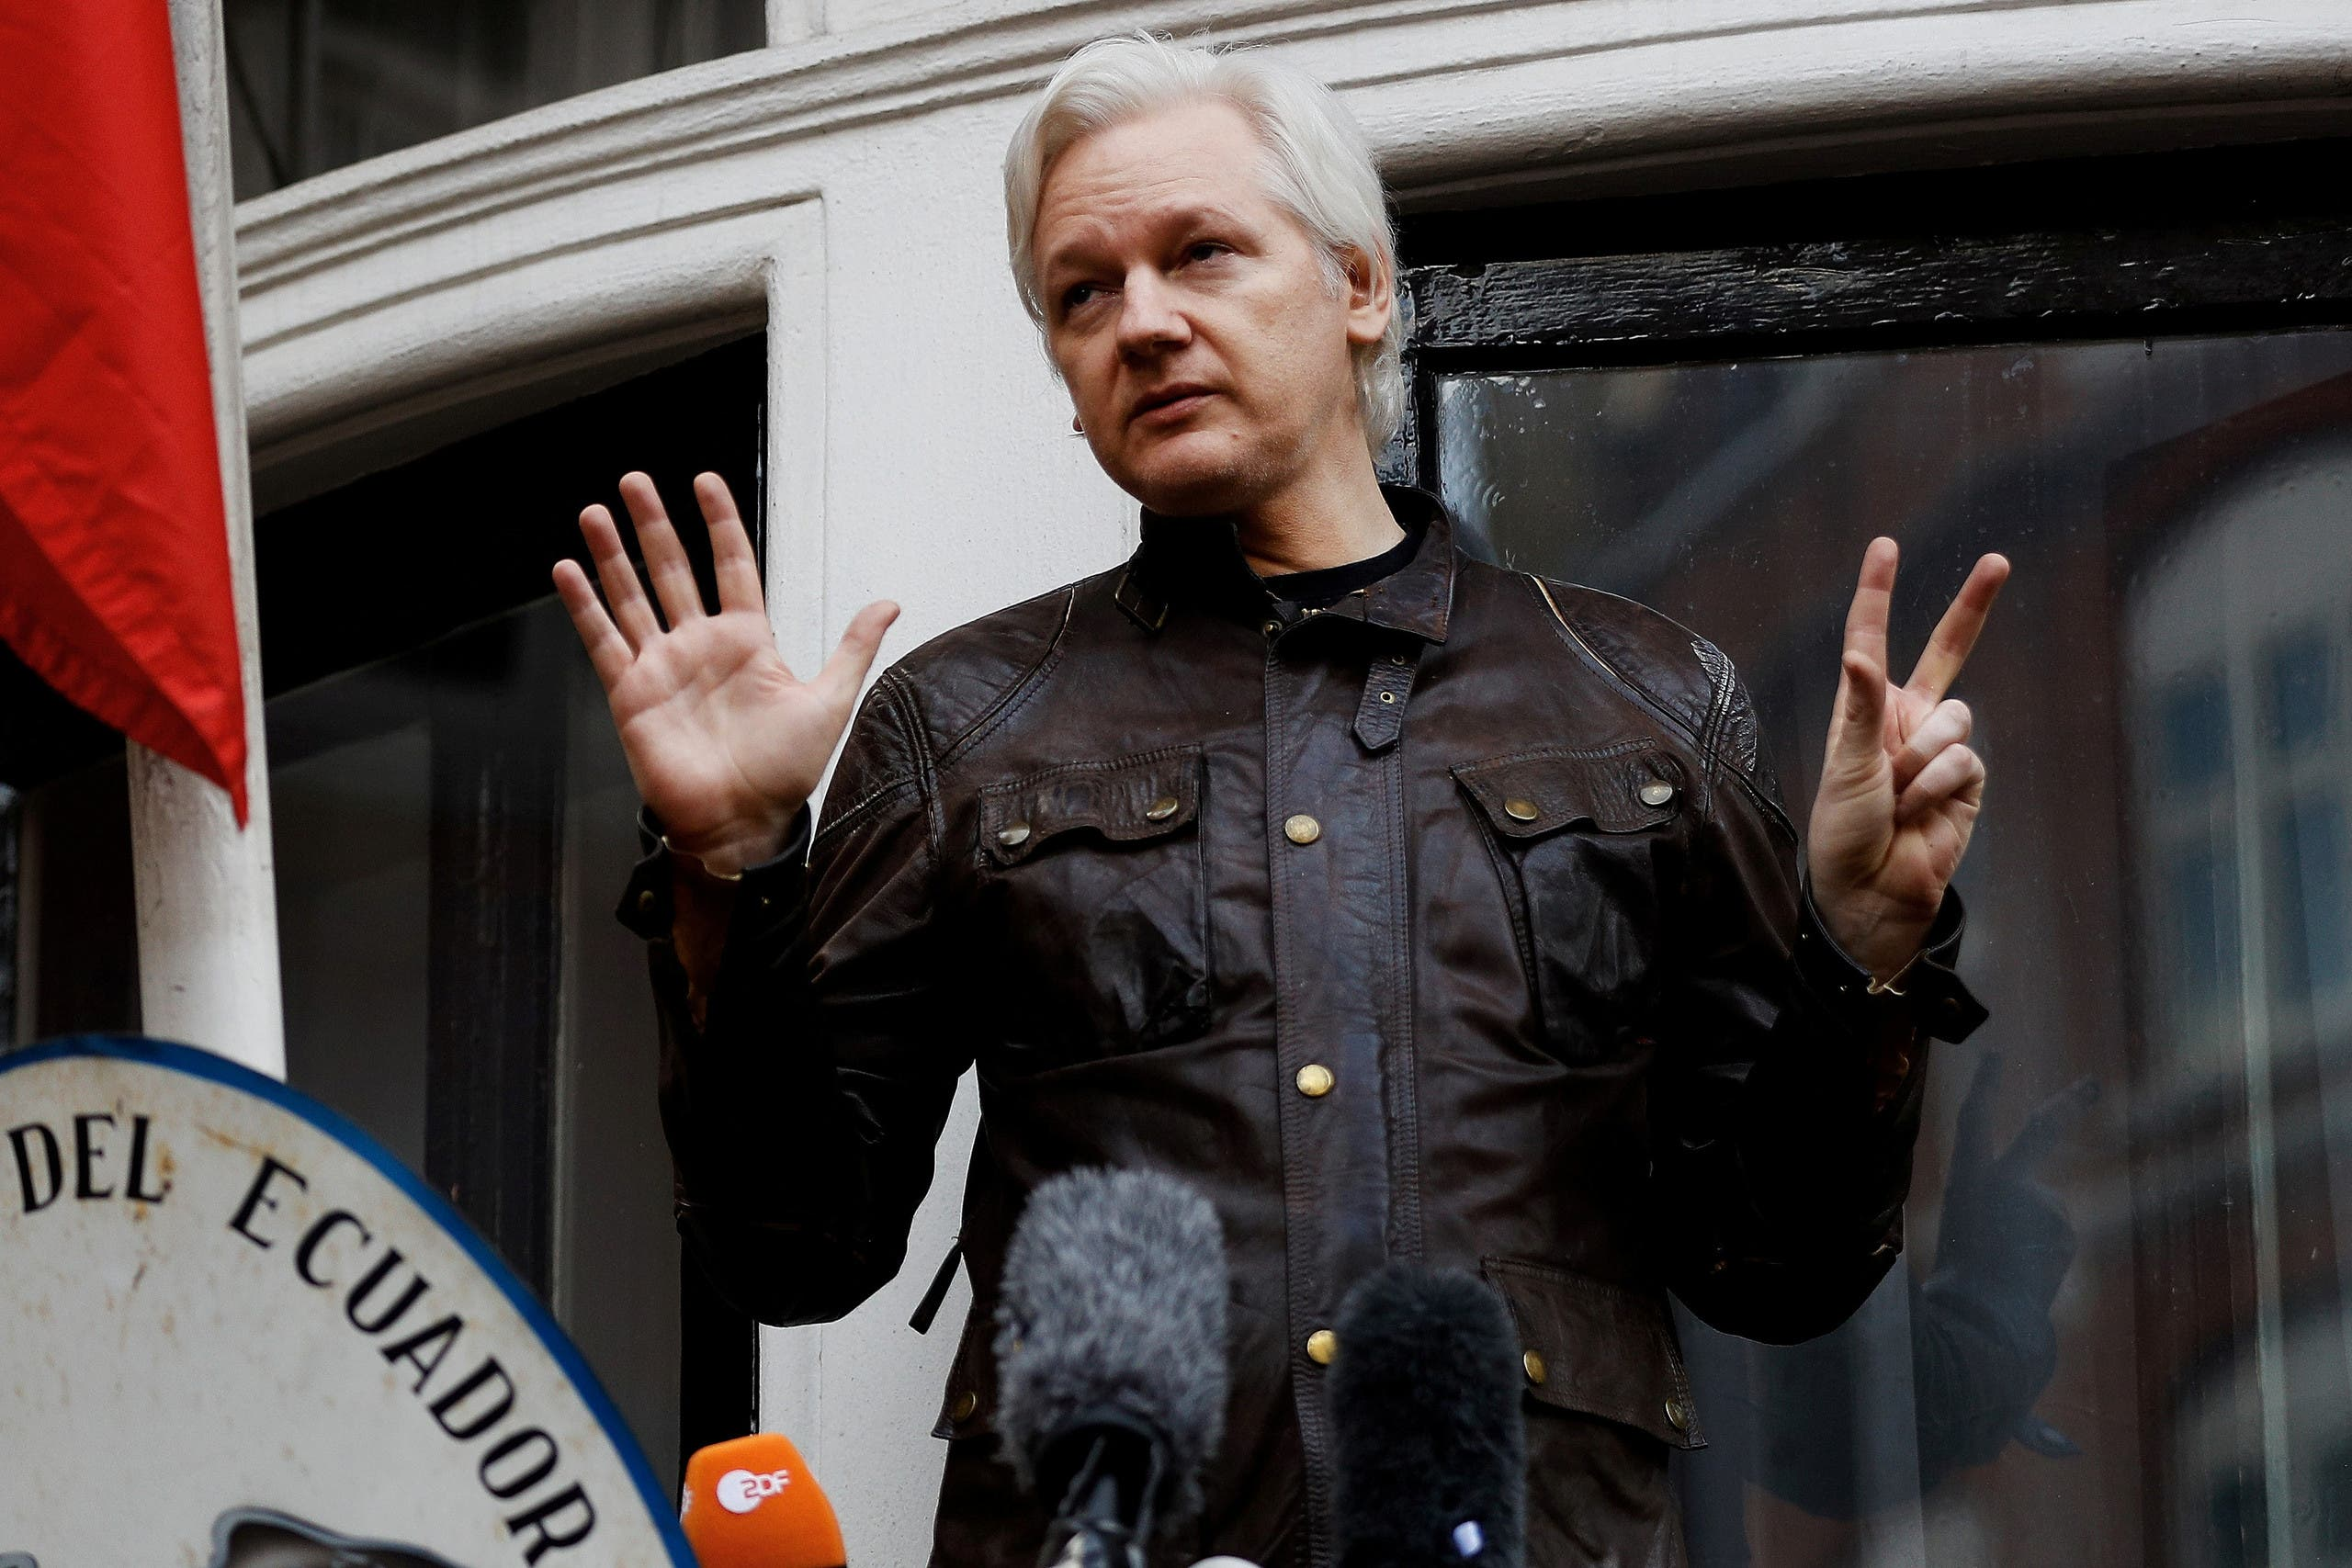 WikiLeaks founder Julian Assange is seen on the balcony of the Ecuadorian Embassy in London, Britain, on May 19, 2017.(Reuters)